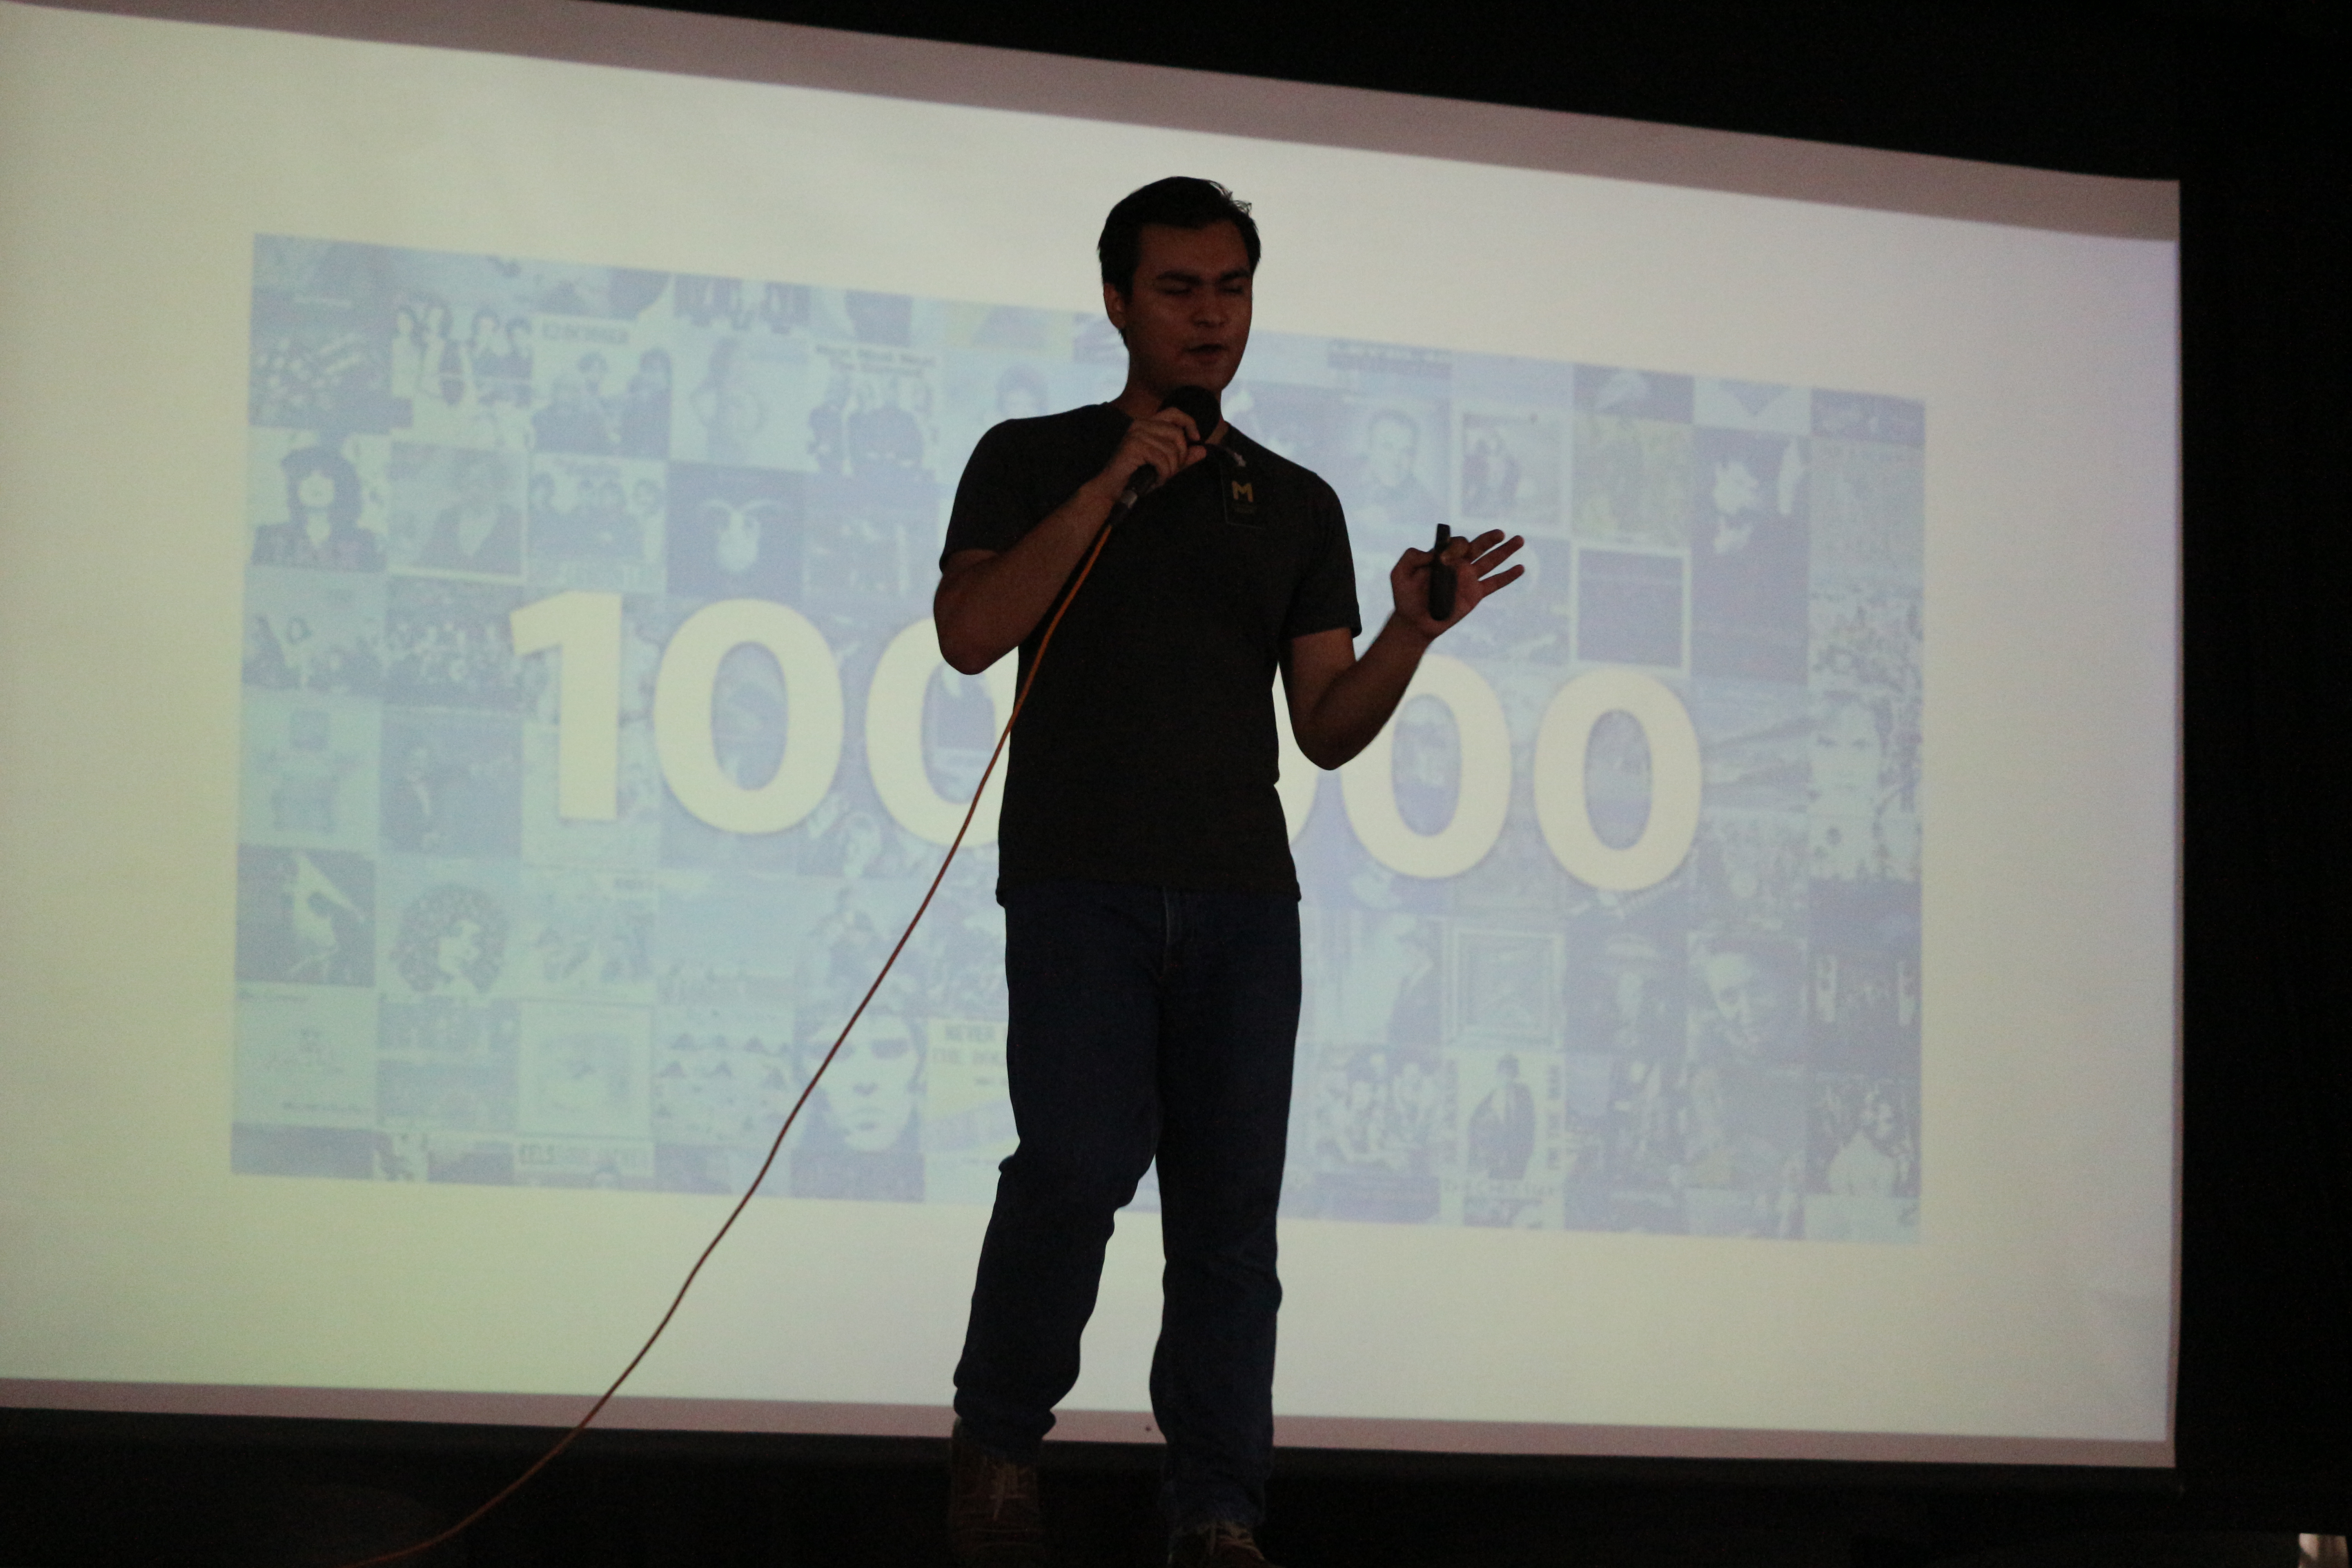 Anand Chowdhary speaking on stage